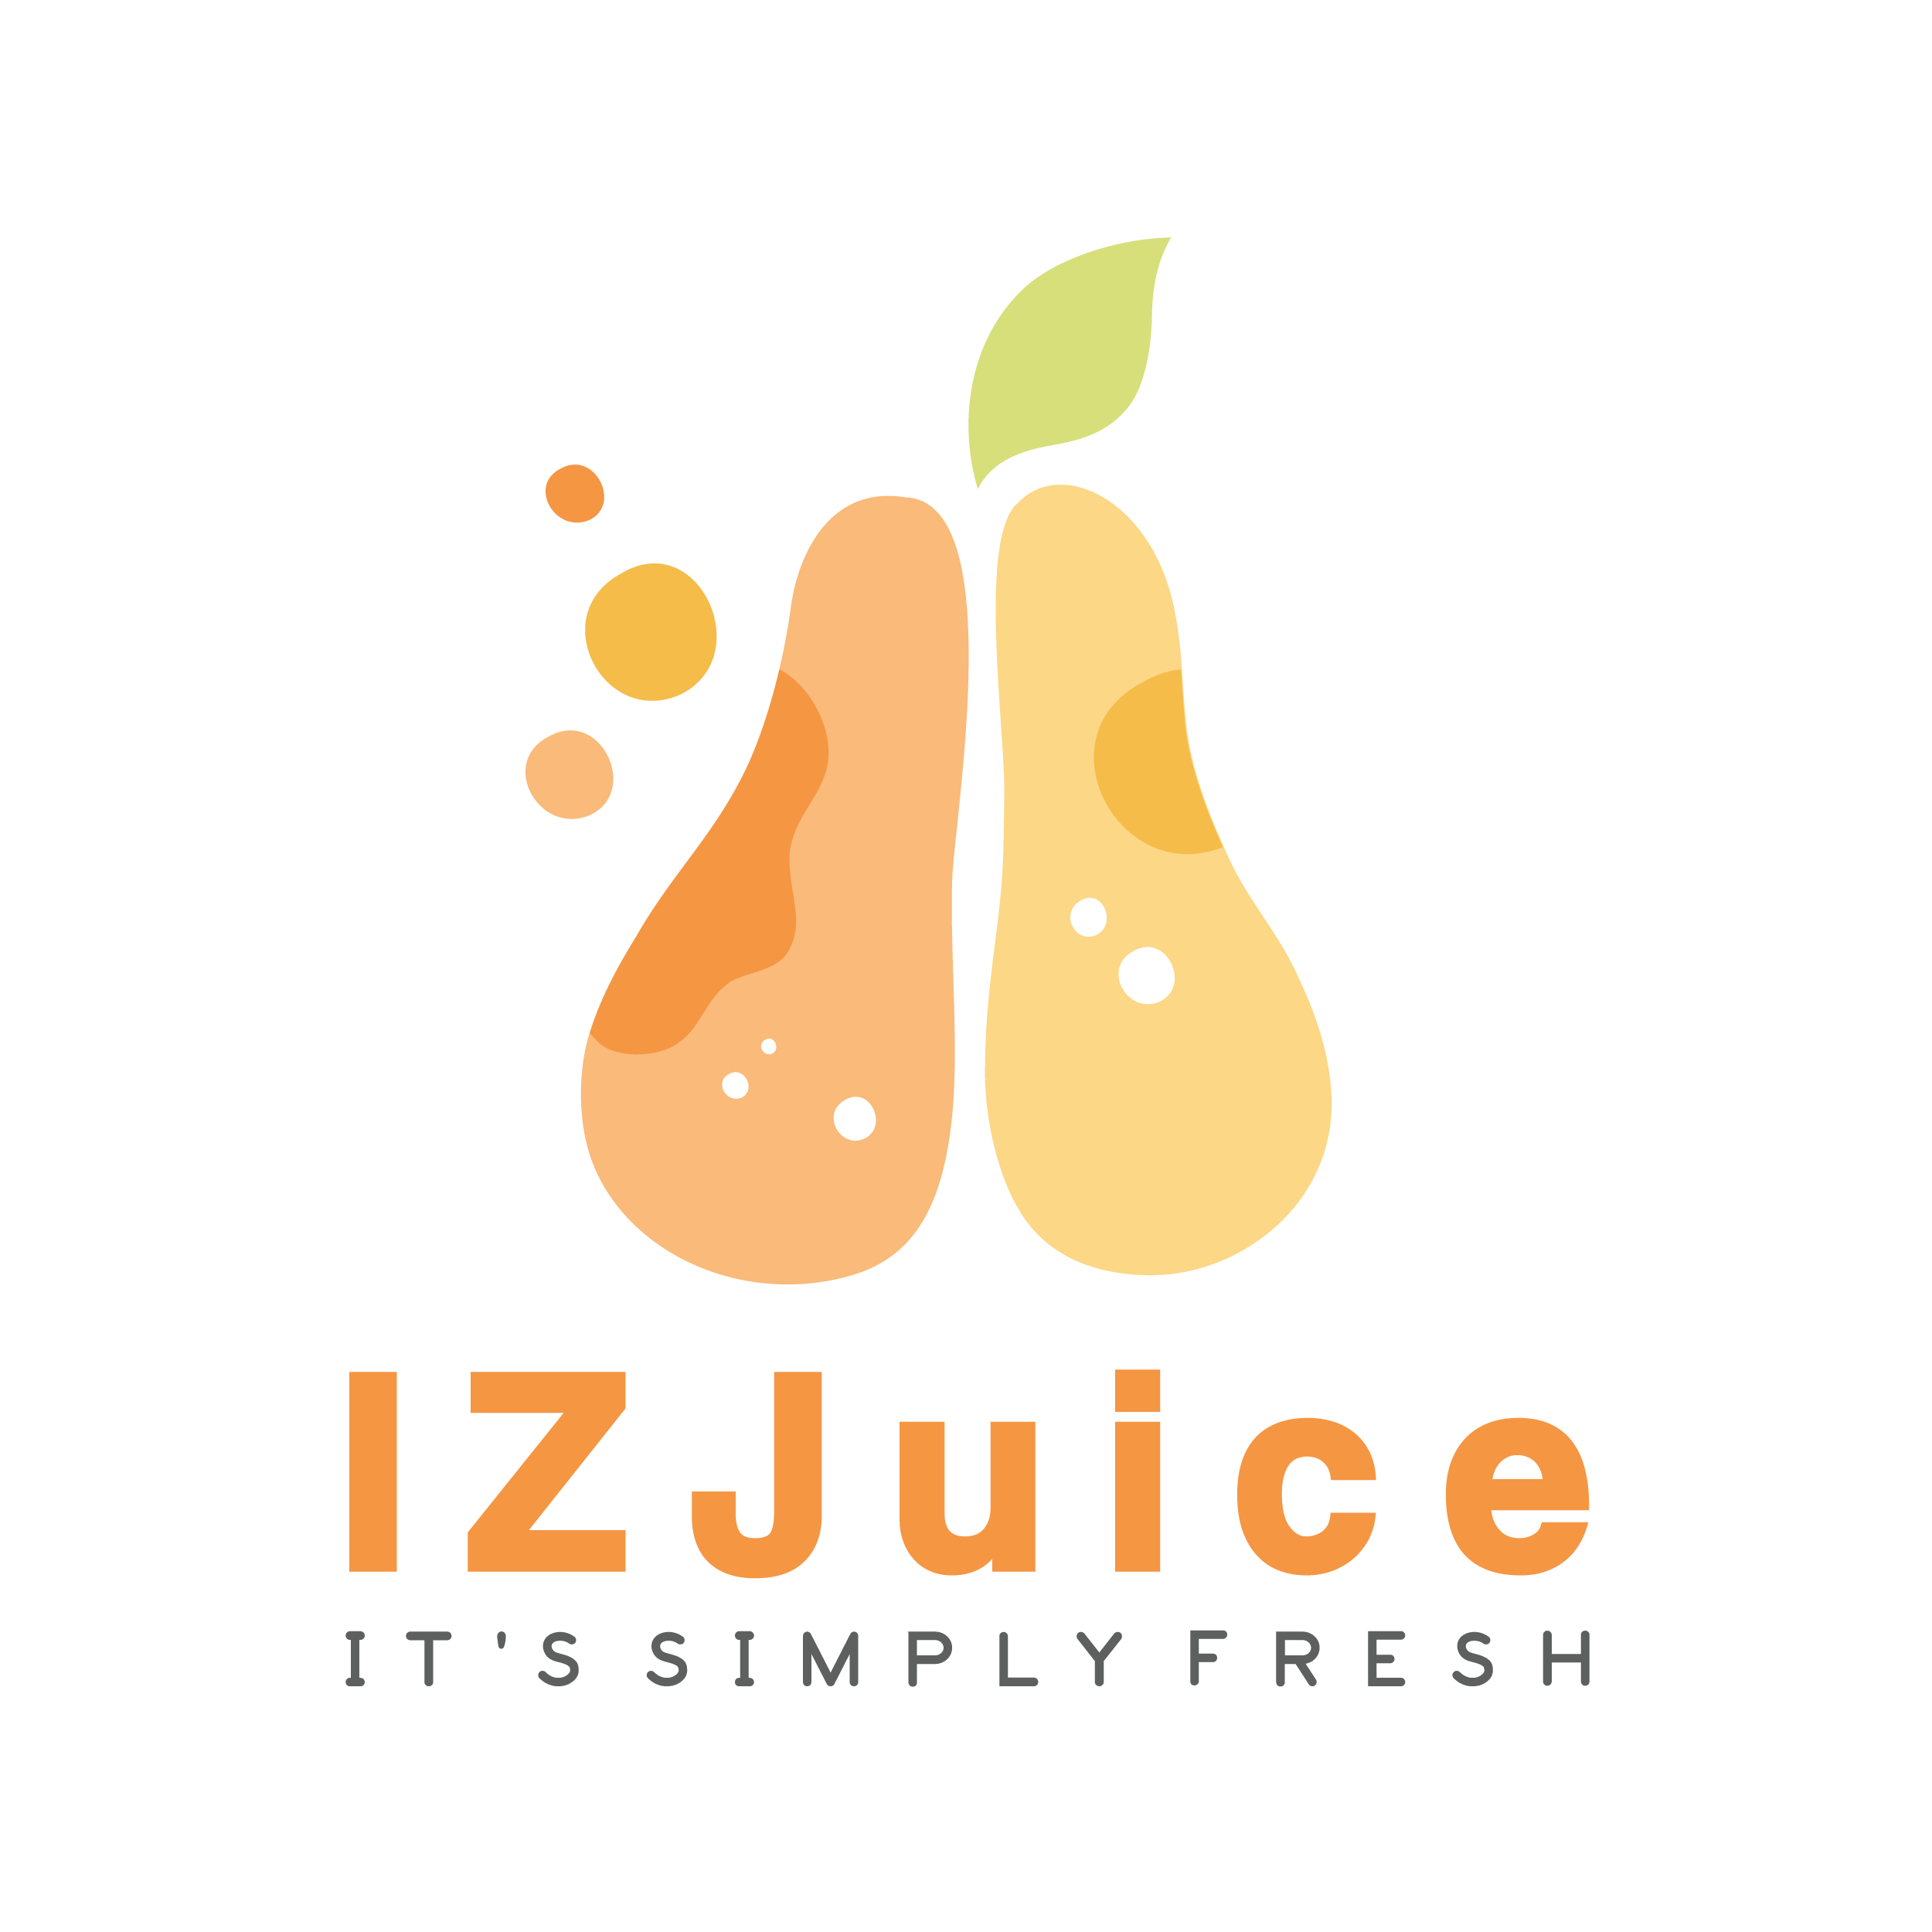 It's simply fresh design for a leading juice brand